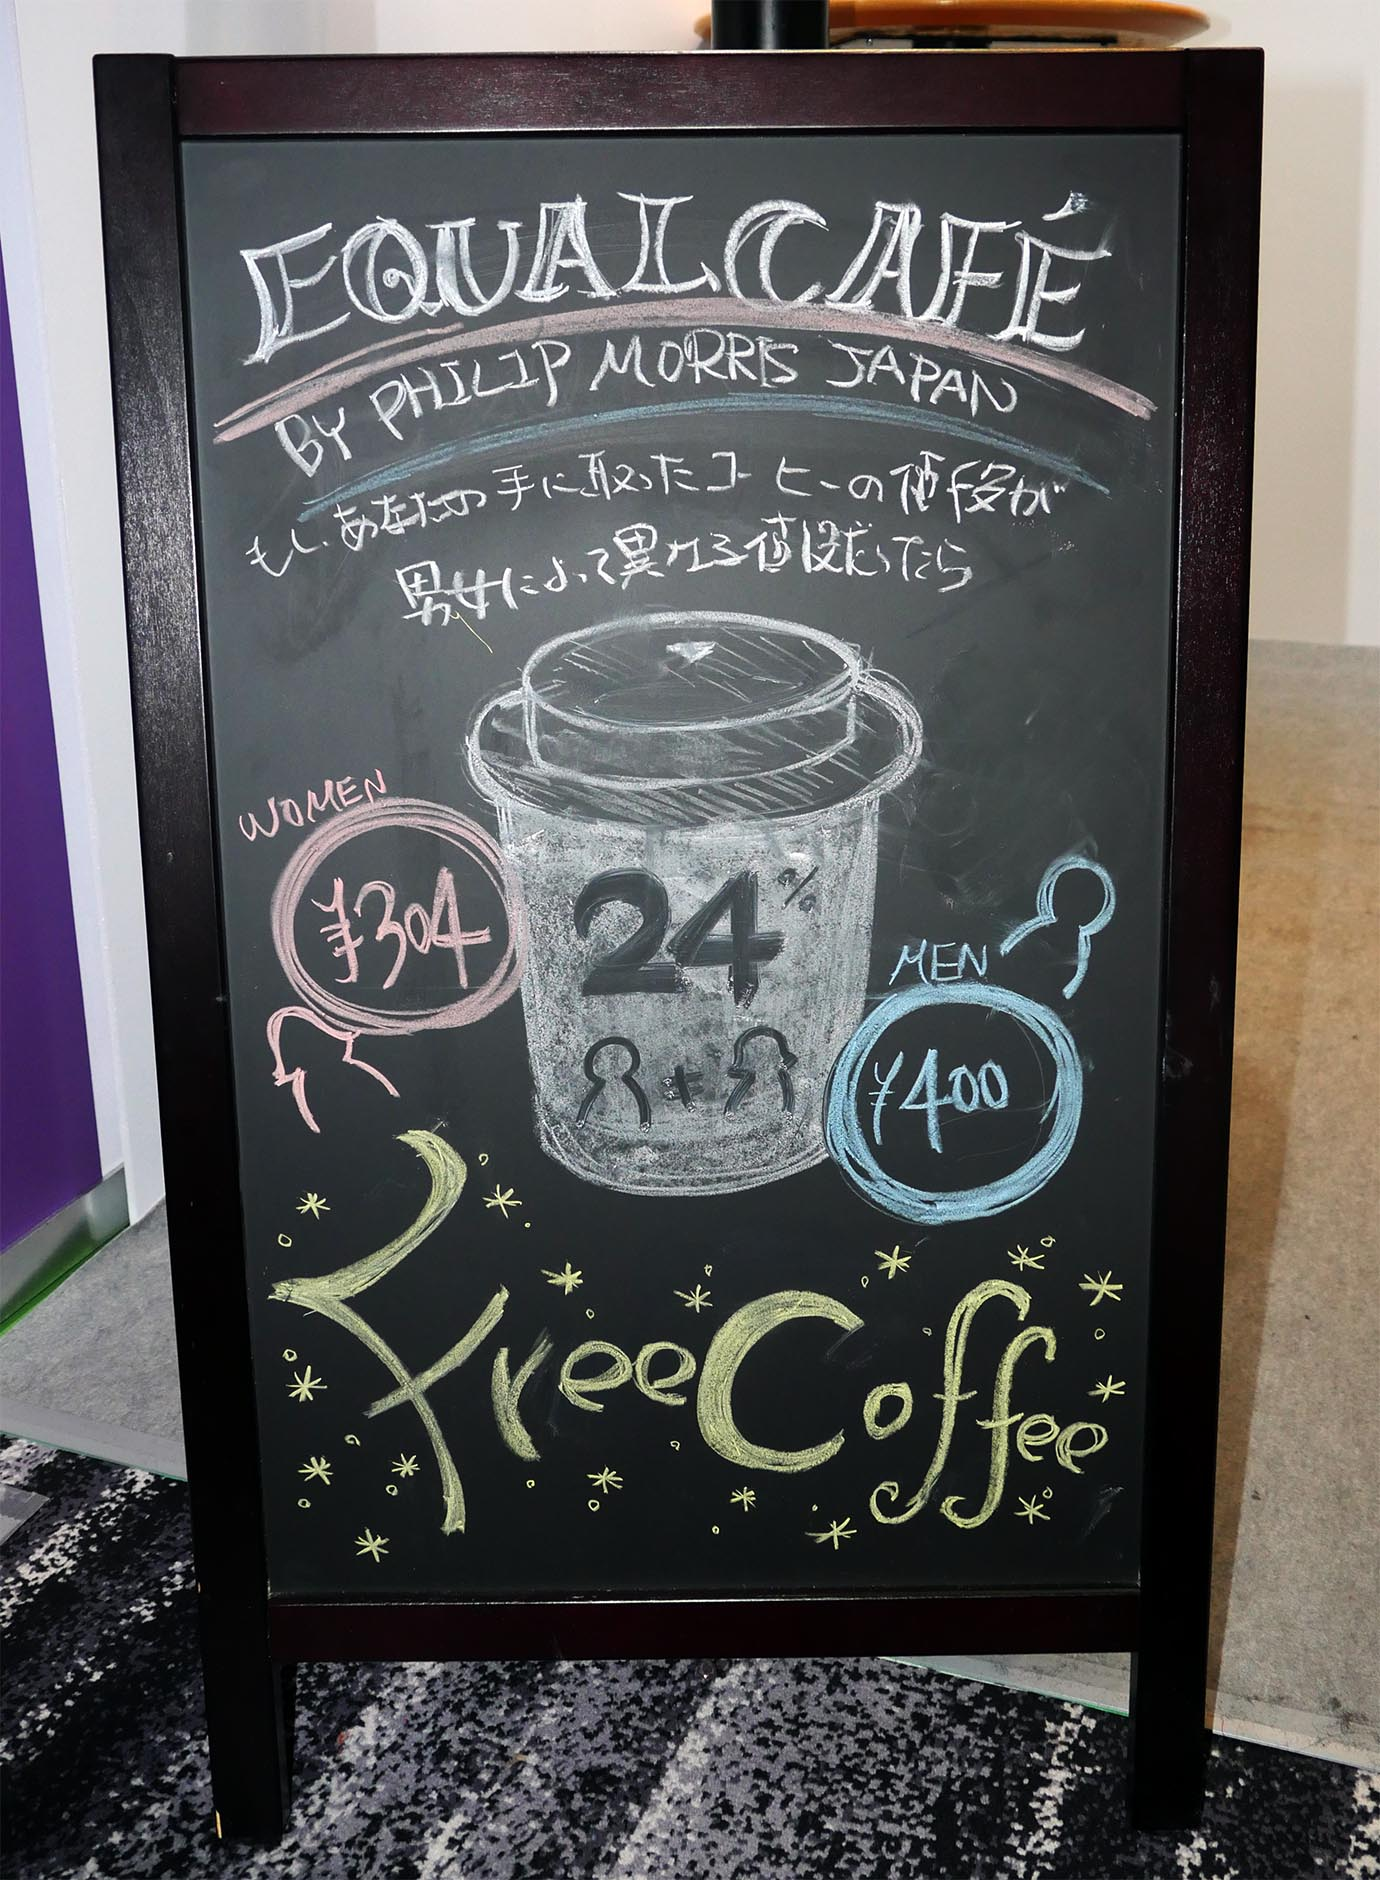 equal-cafe-pmj8